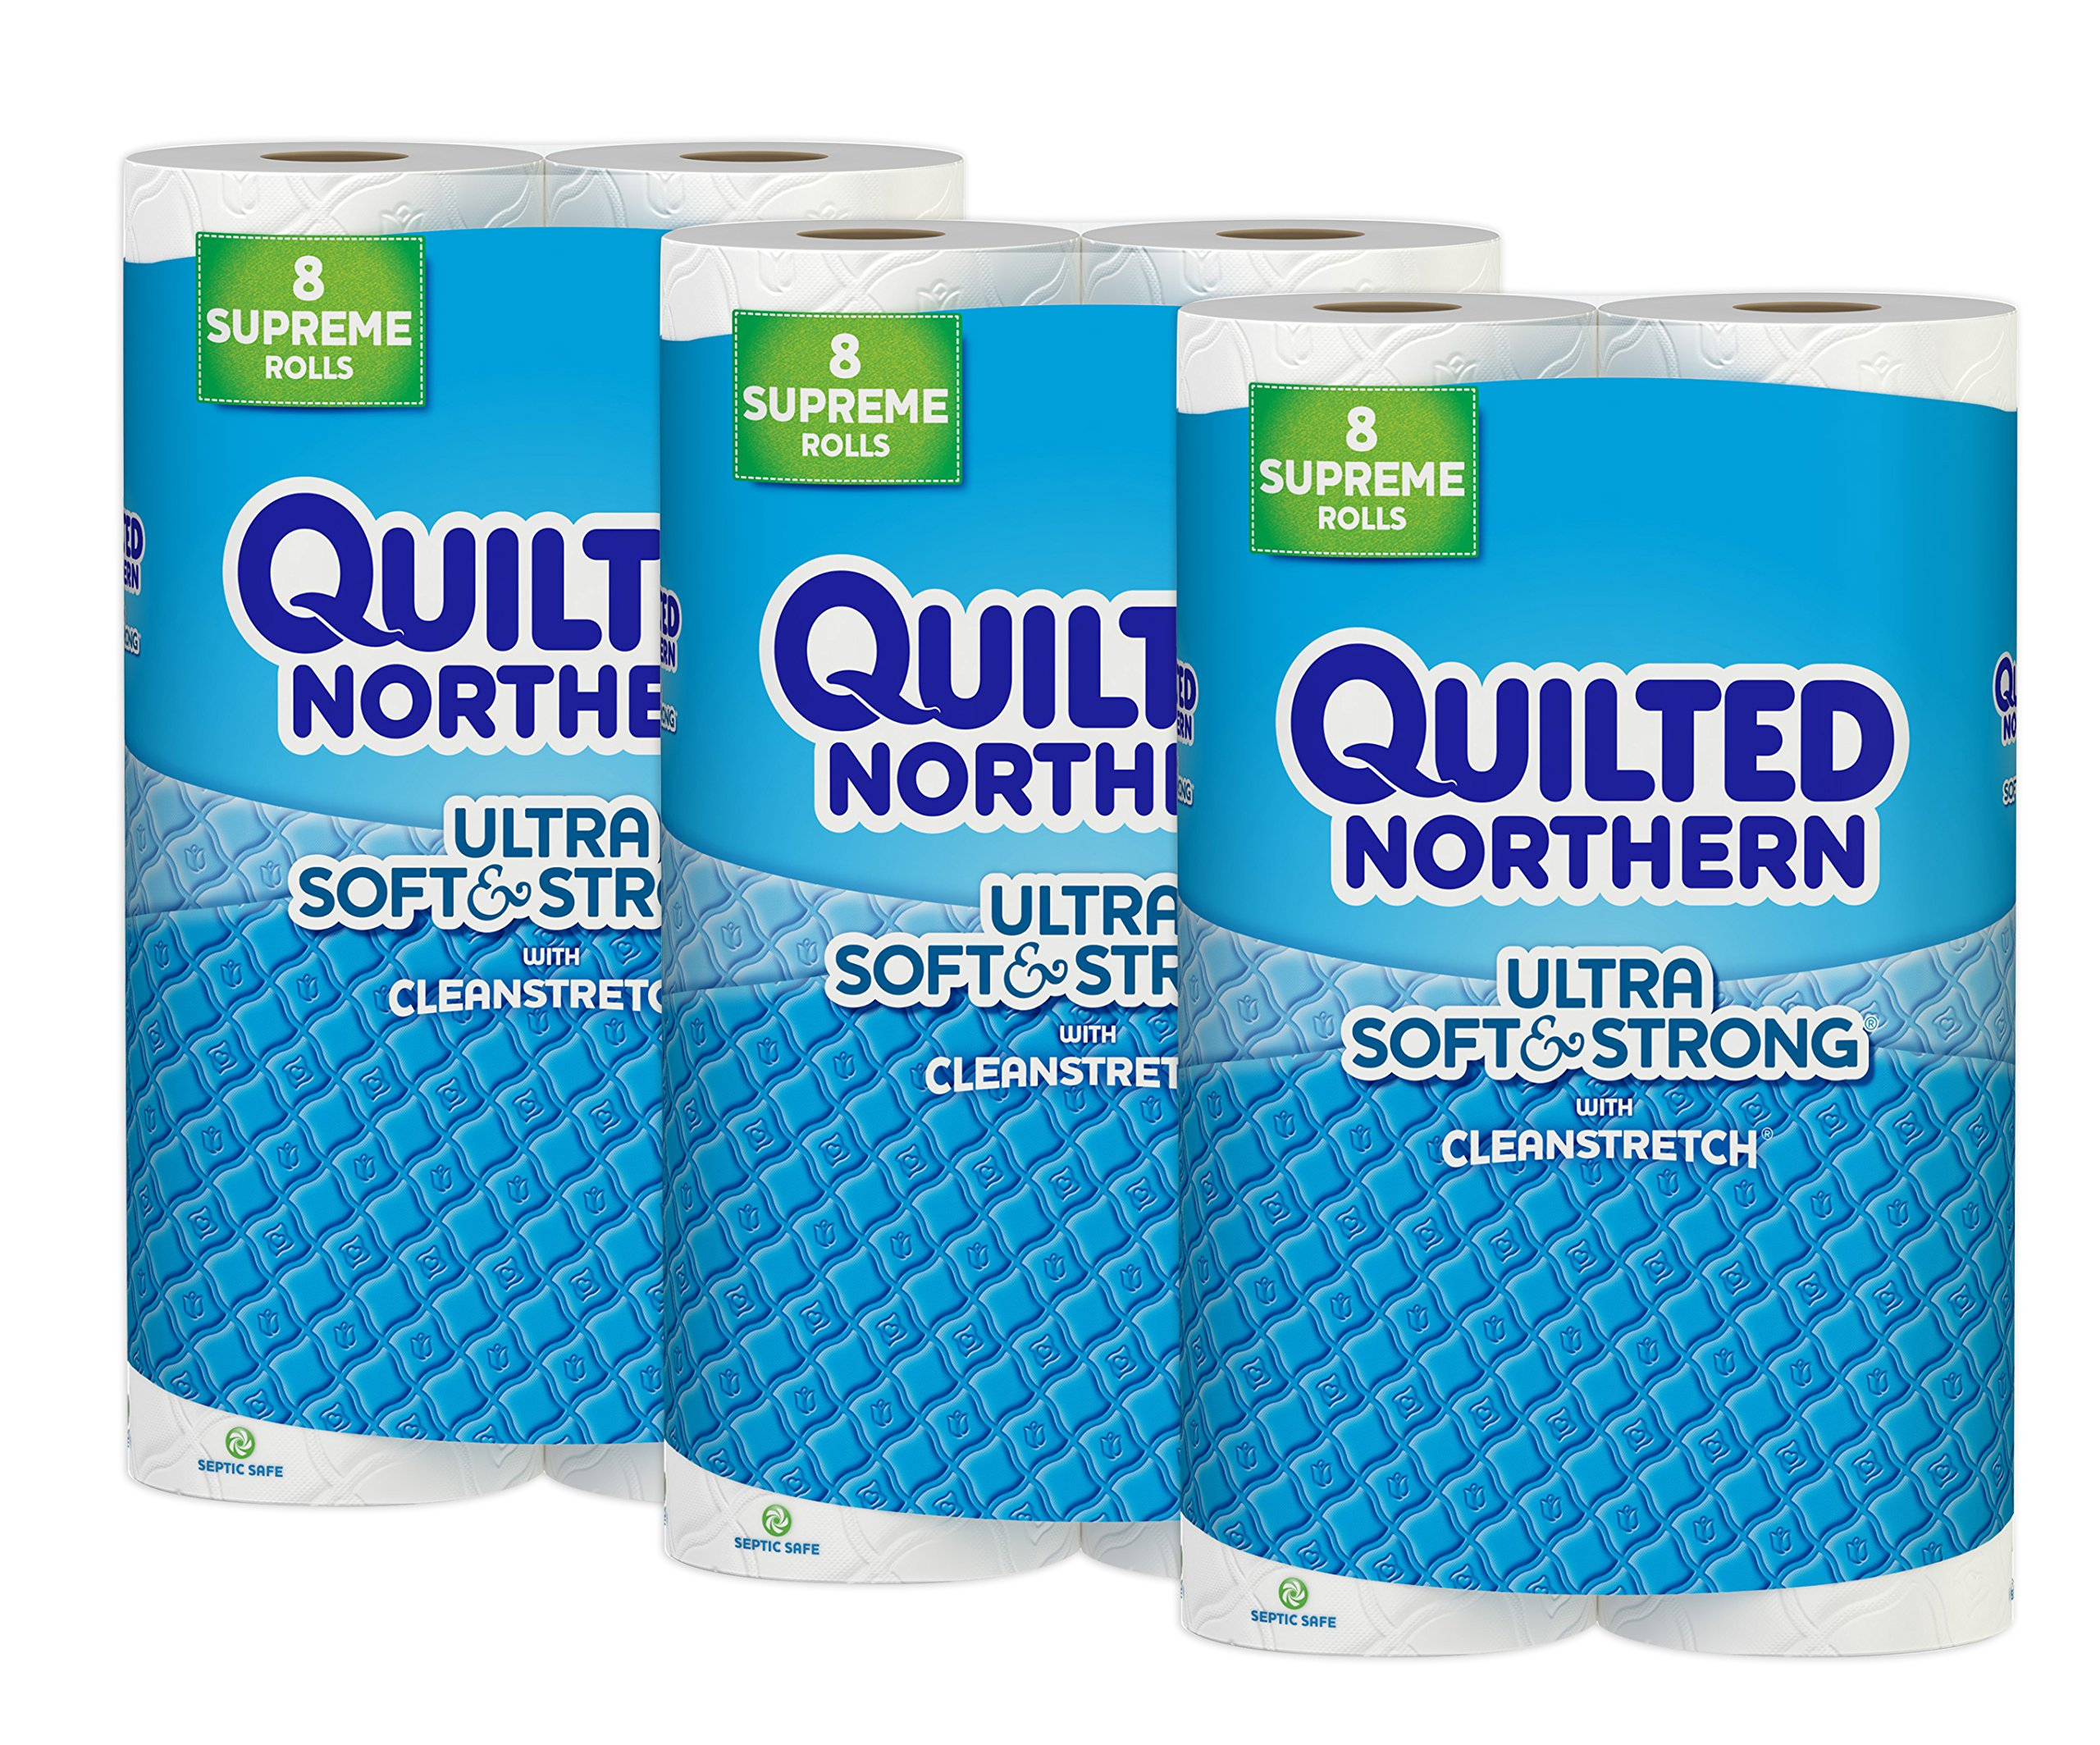 com plush rolls quilt northern toilet walmart ultra tissue ip quilted bath paper mega